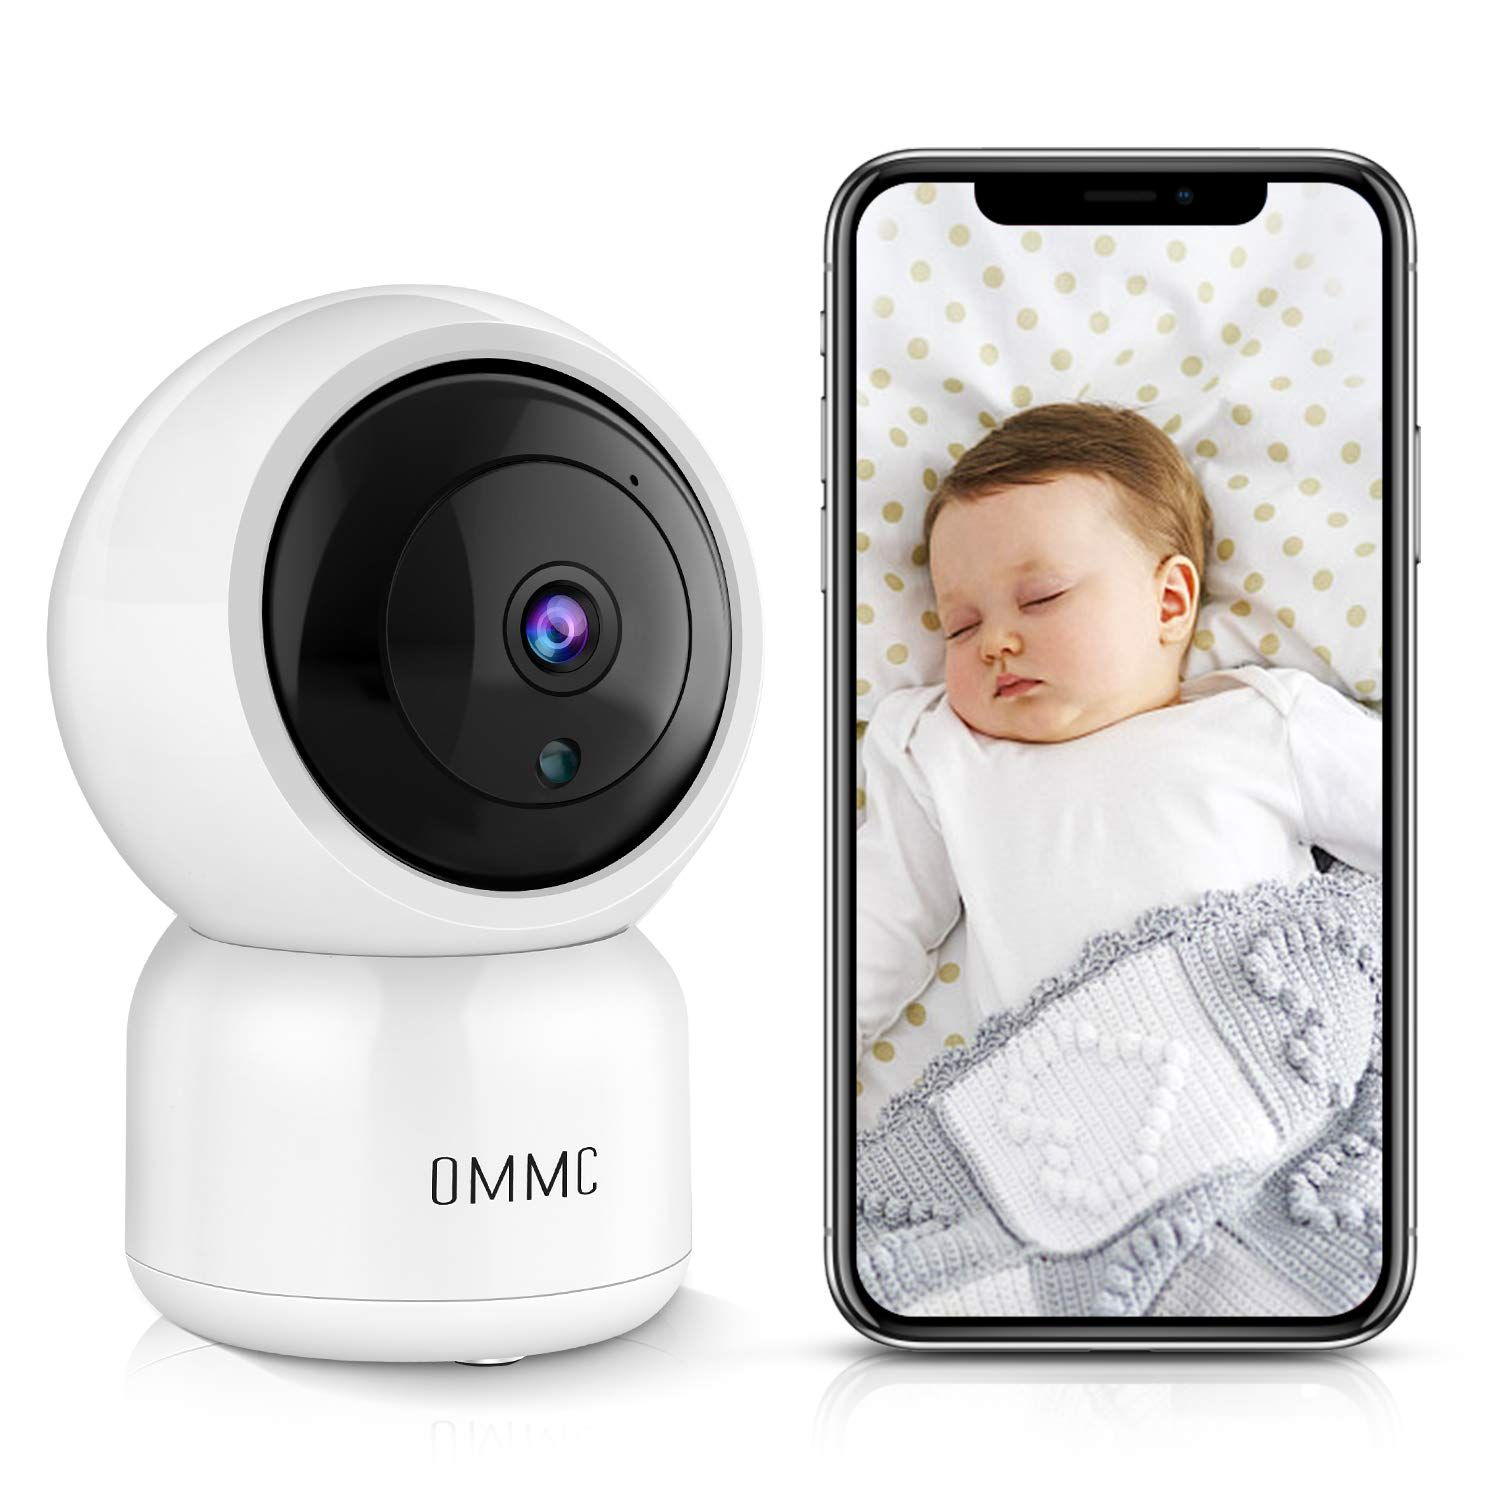 OMMC Wireless Security Camera, 1080P Home IP Camera Baby